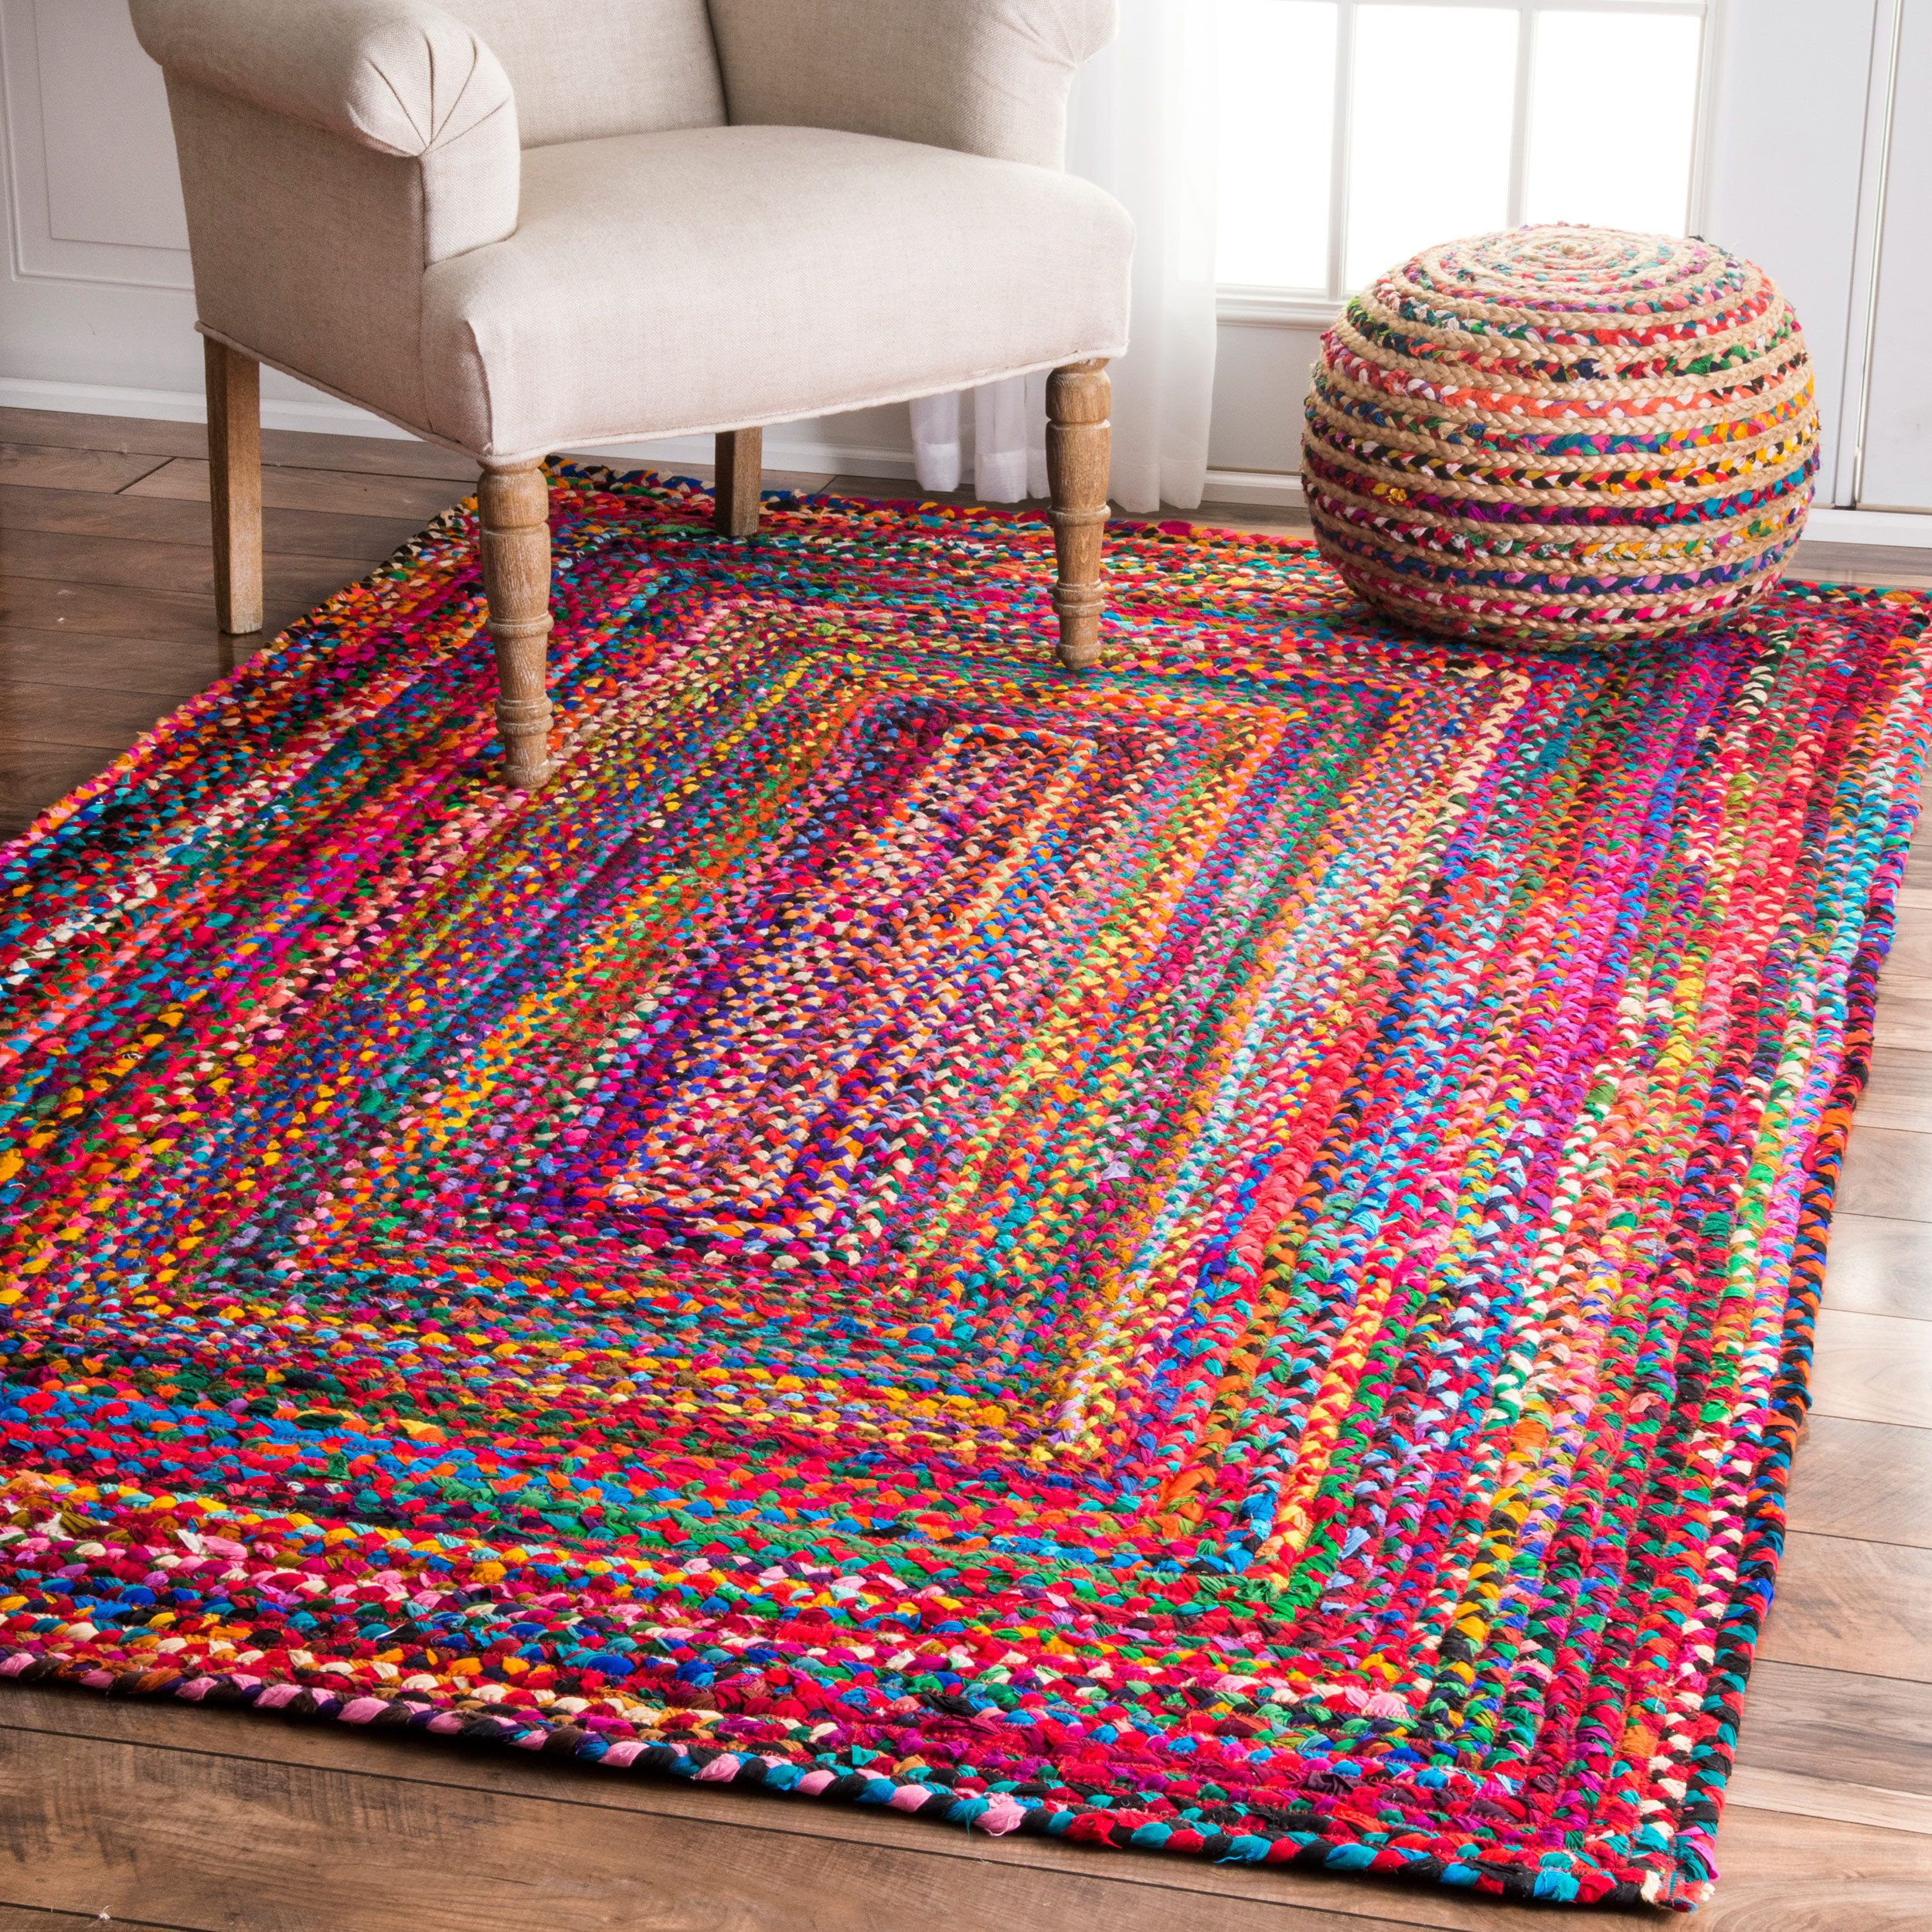 Handmade Rag Rugs For Sale: NuLOOM Casual Handmade Braided Cotton Multi Rug (9' X 12